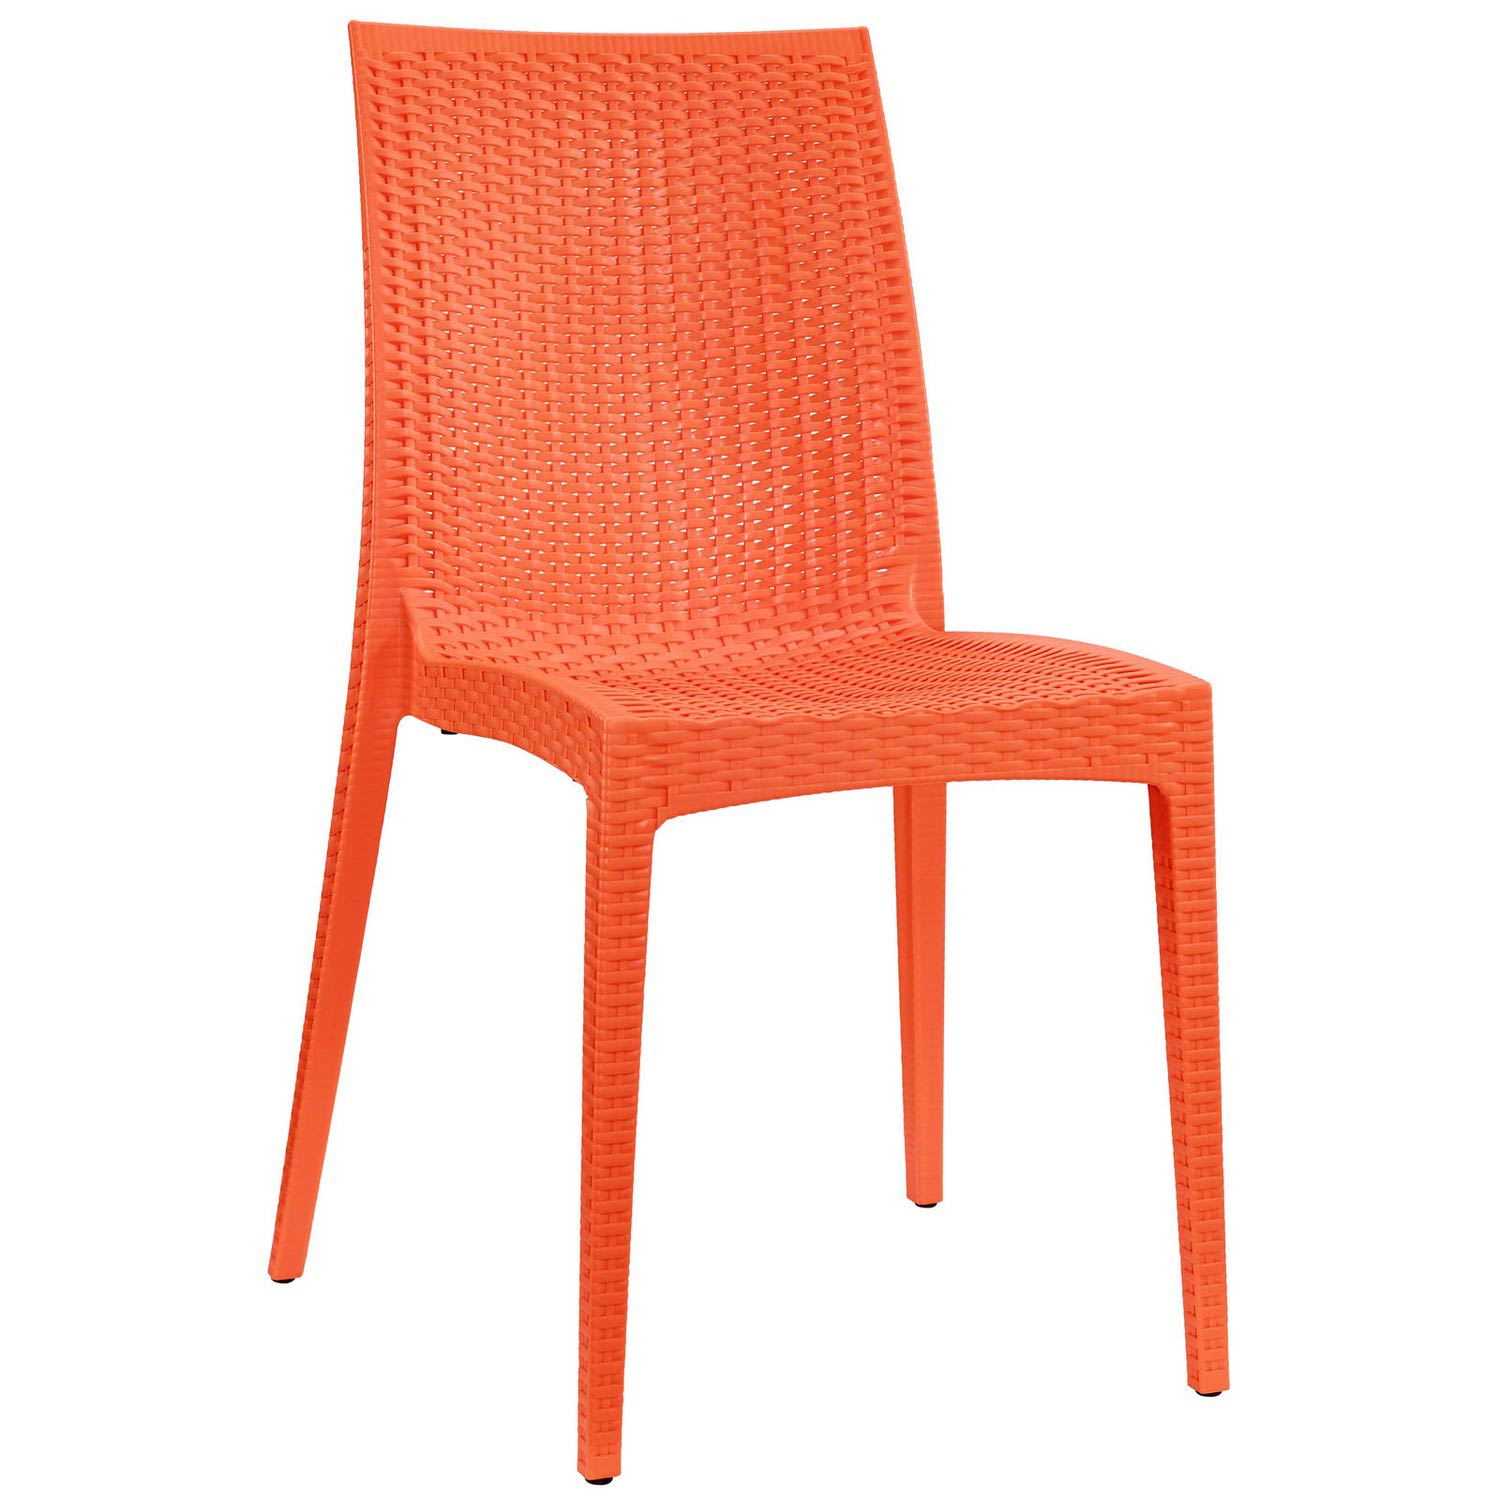 Modway Intrepid Dining Side Chair - Orange